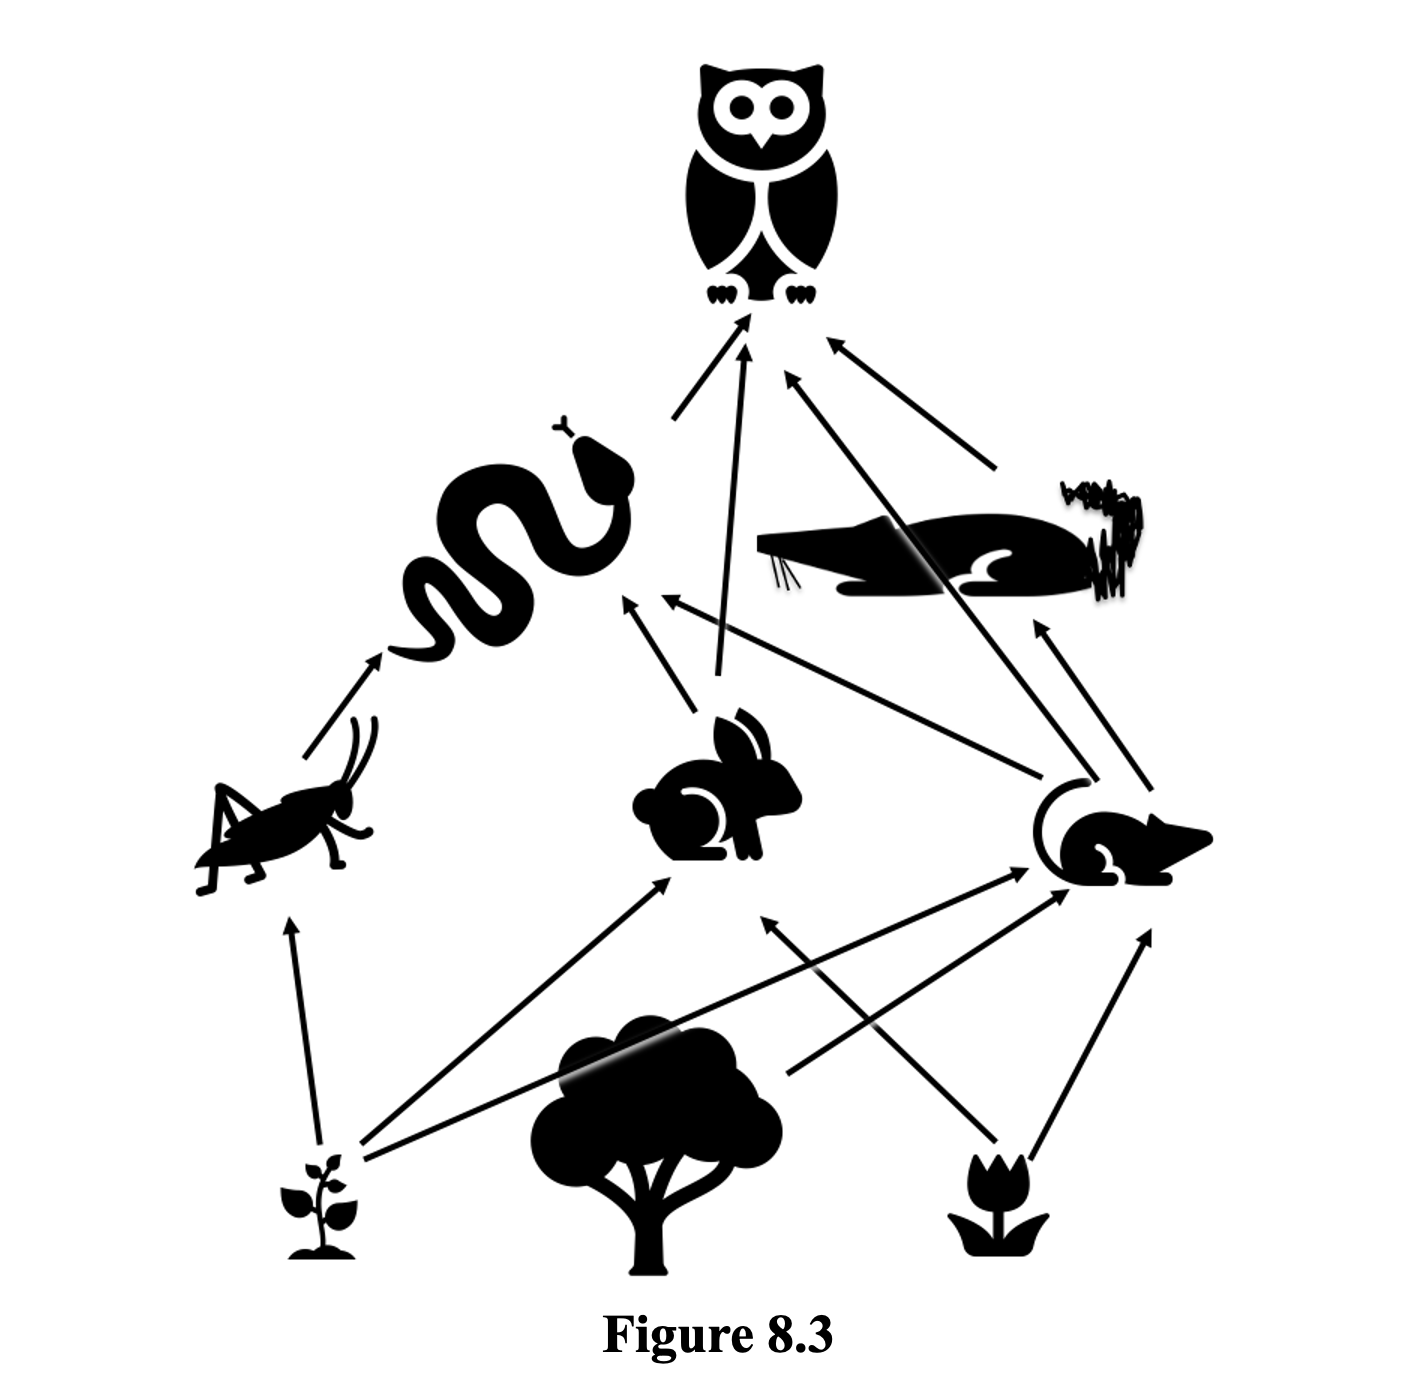 Figure 8.3 shows a simple food web. At the bottom of the food web there is a small leafy plant with arrows leading form it and pointing to a grasshopper, a rabbit and a mouse, the tree has a single arrow leading from it and pointing to the mouse and a small flowering planst has arrows leading from it and pointing to the rabbit and the mouse. Above them in the food web is he grasshopper with a single arrow leading from it and pointing to the snake, the rabbit with lines leading from it and pointing to the snake and to the owl, and a mouse with three lines leading from it and pointing to the snake, the owl and the shrew. Above that is a snake with arrows leading from it and pointing to the owl, and the shrew with a single arrow leading from it to the owl. At the top of the food web sits the owl.